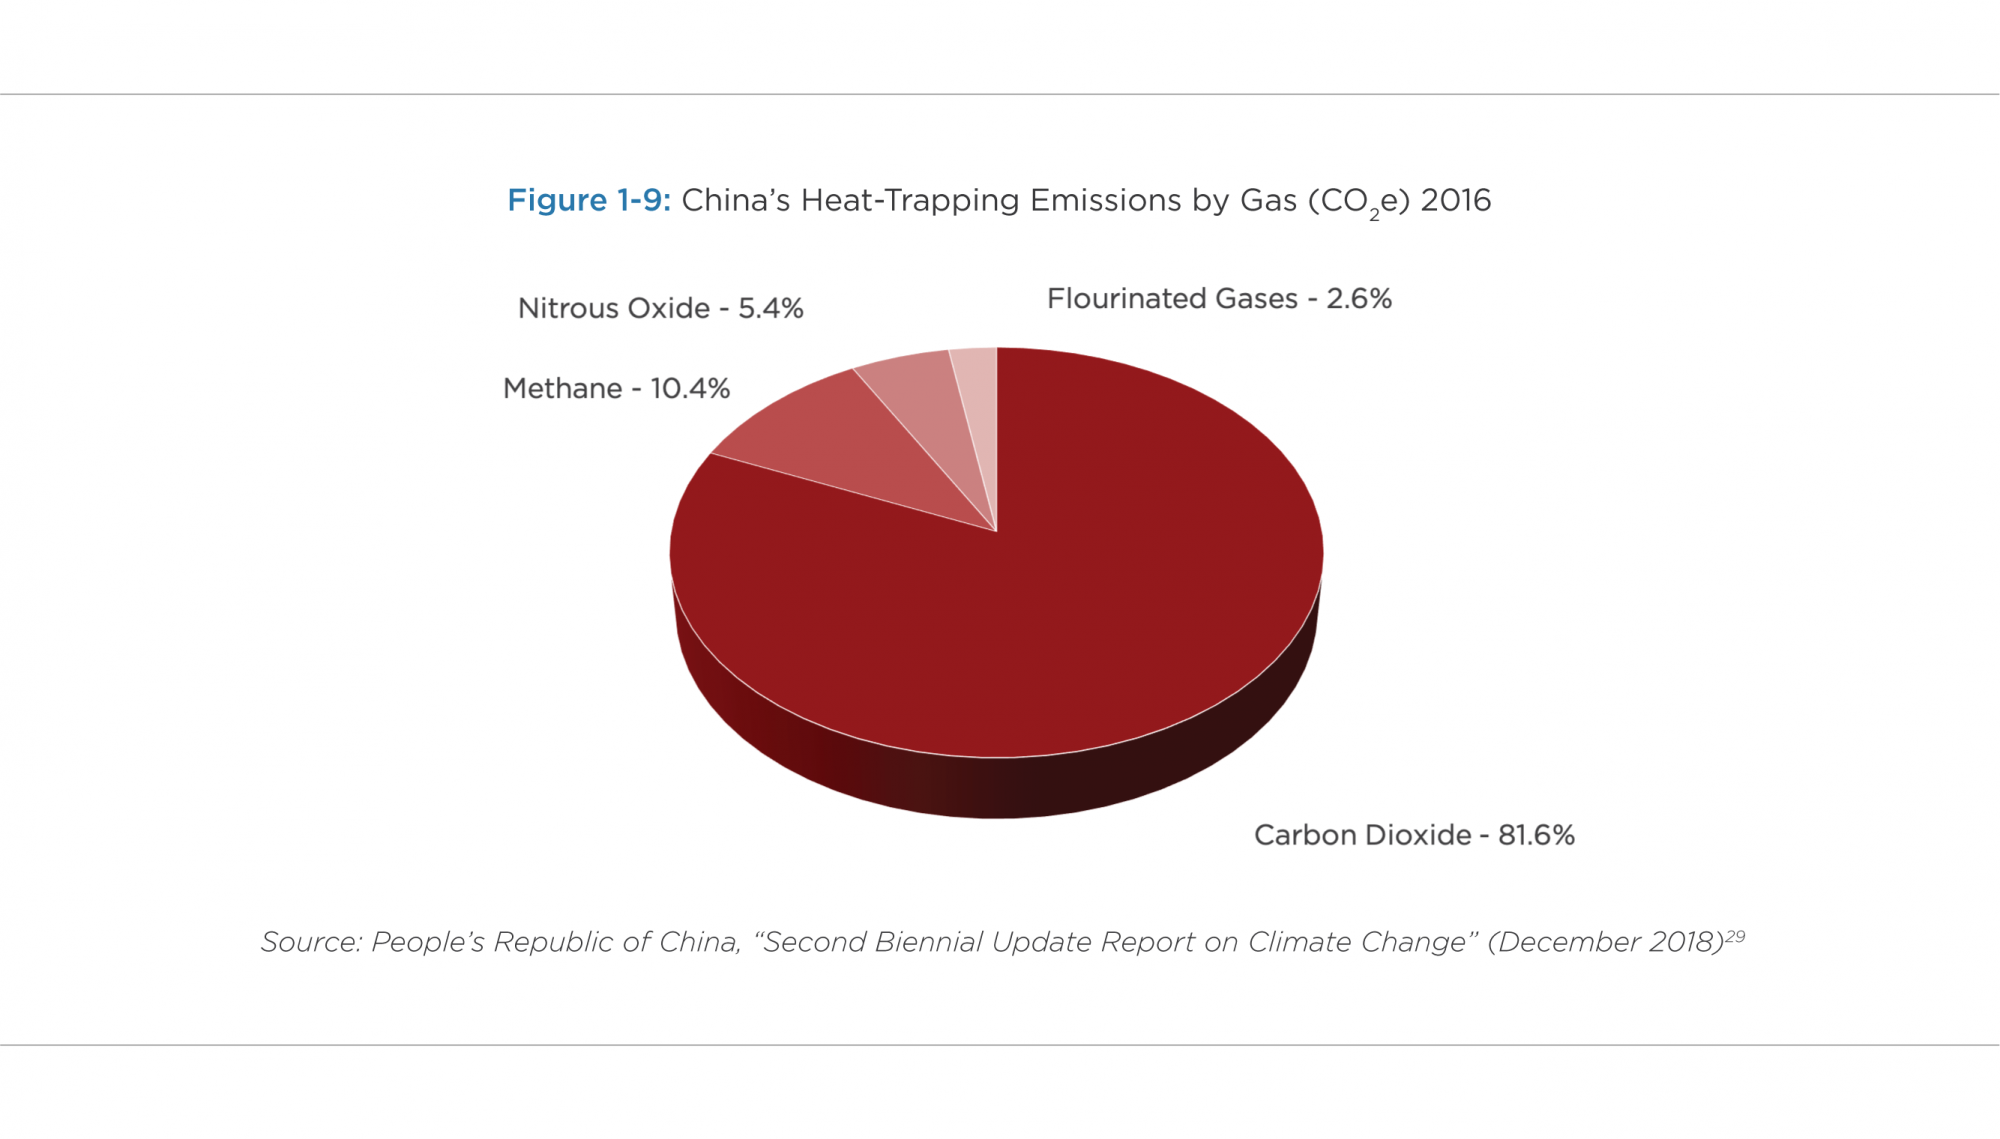 China's Heat-Trapping Emissions by Gas (CO2e) 2016